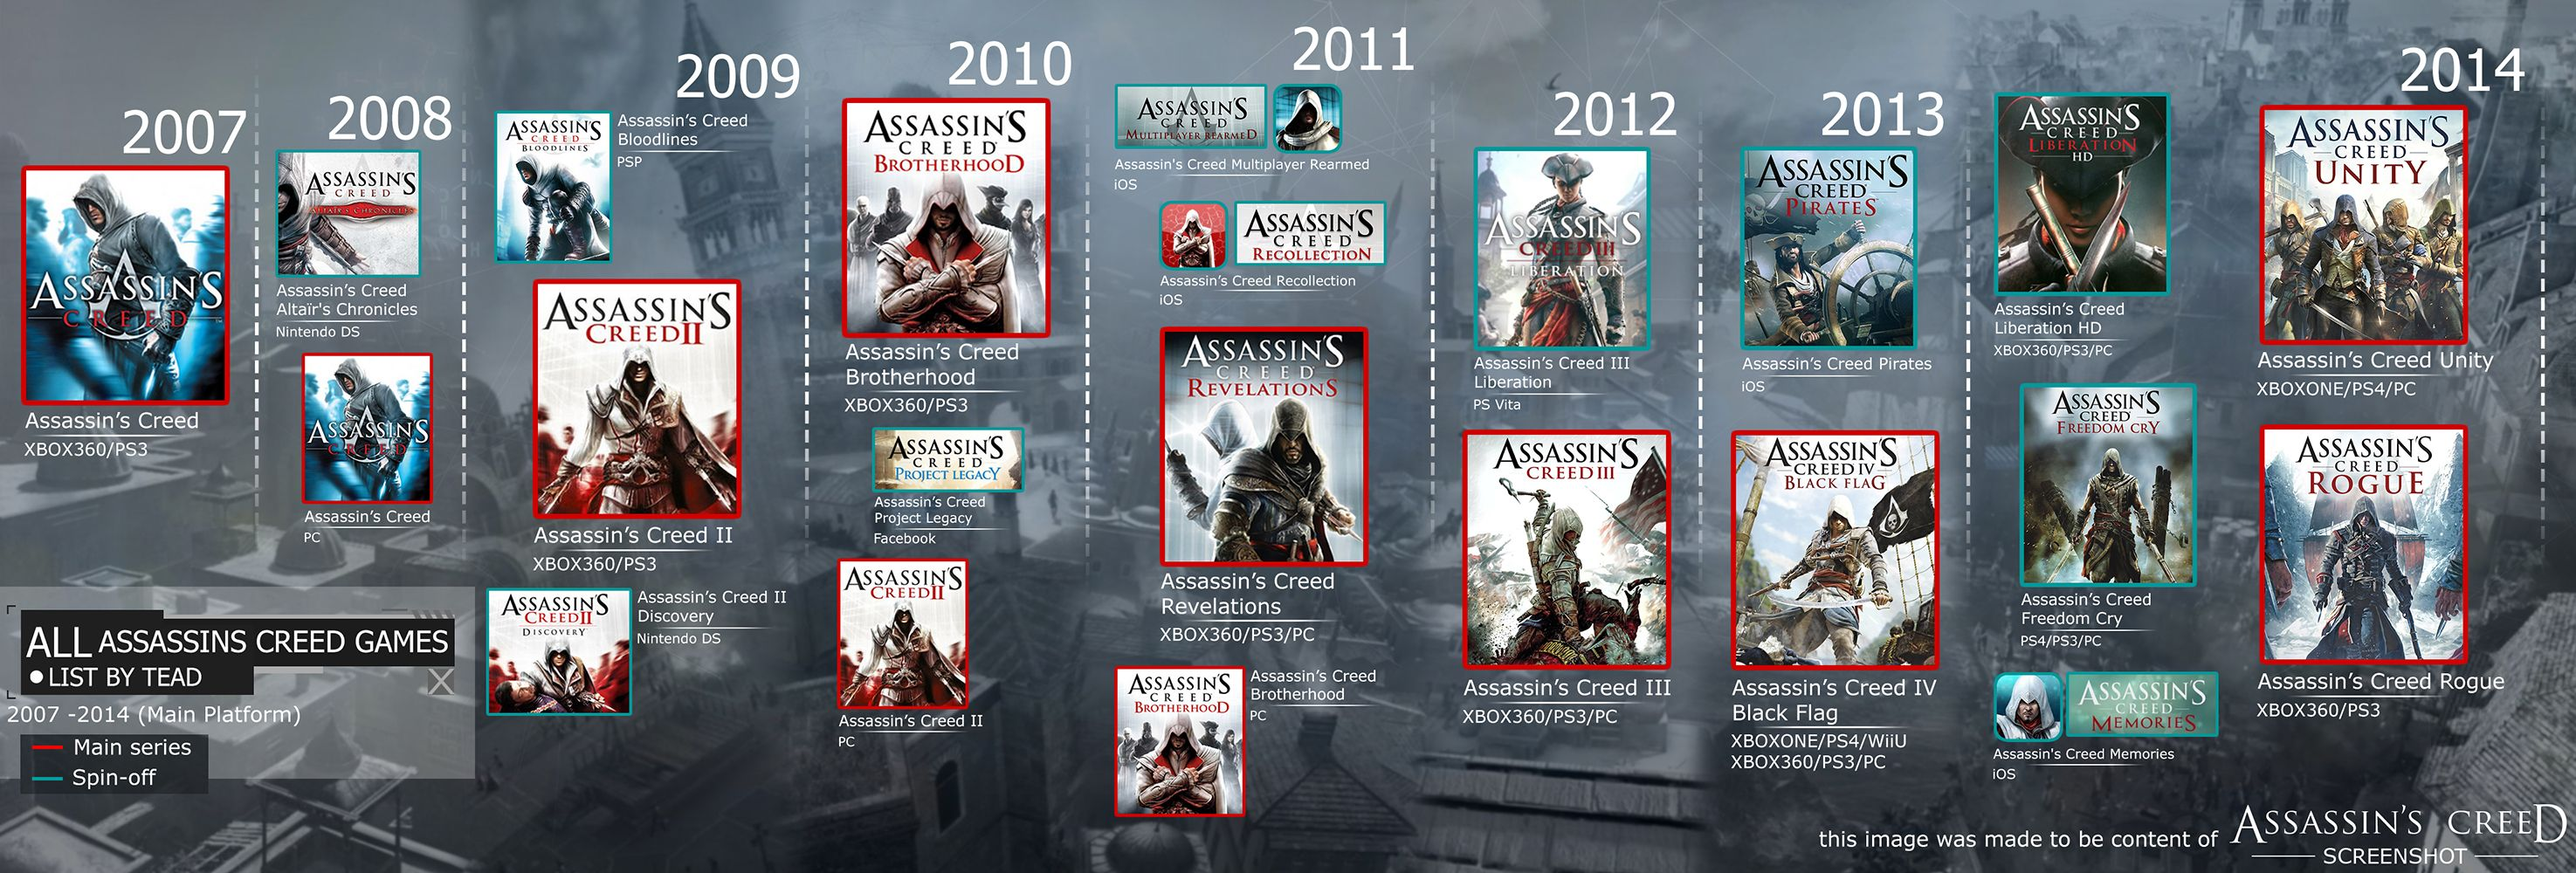 Assassin S Creed Timeline Google Search Assassins Creed All